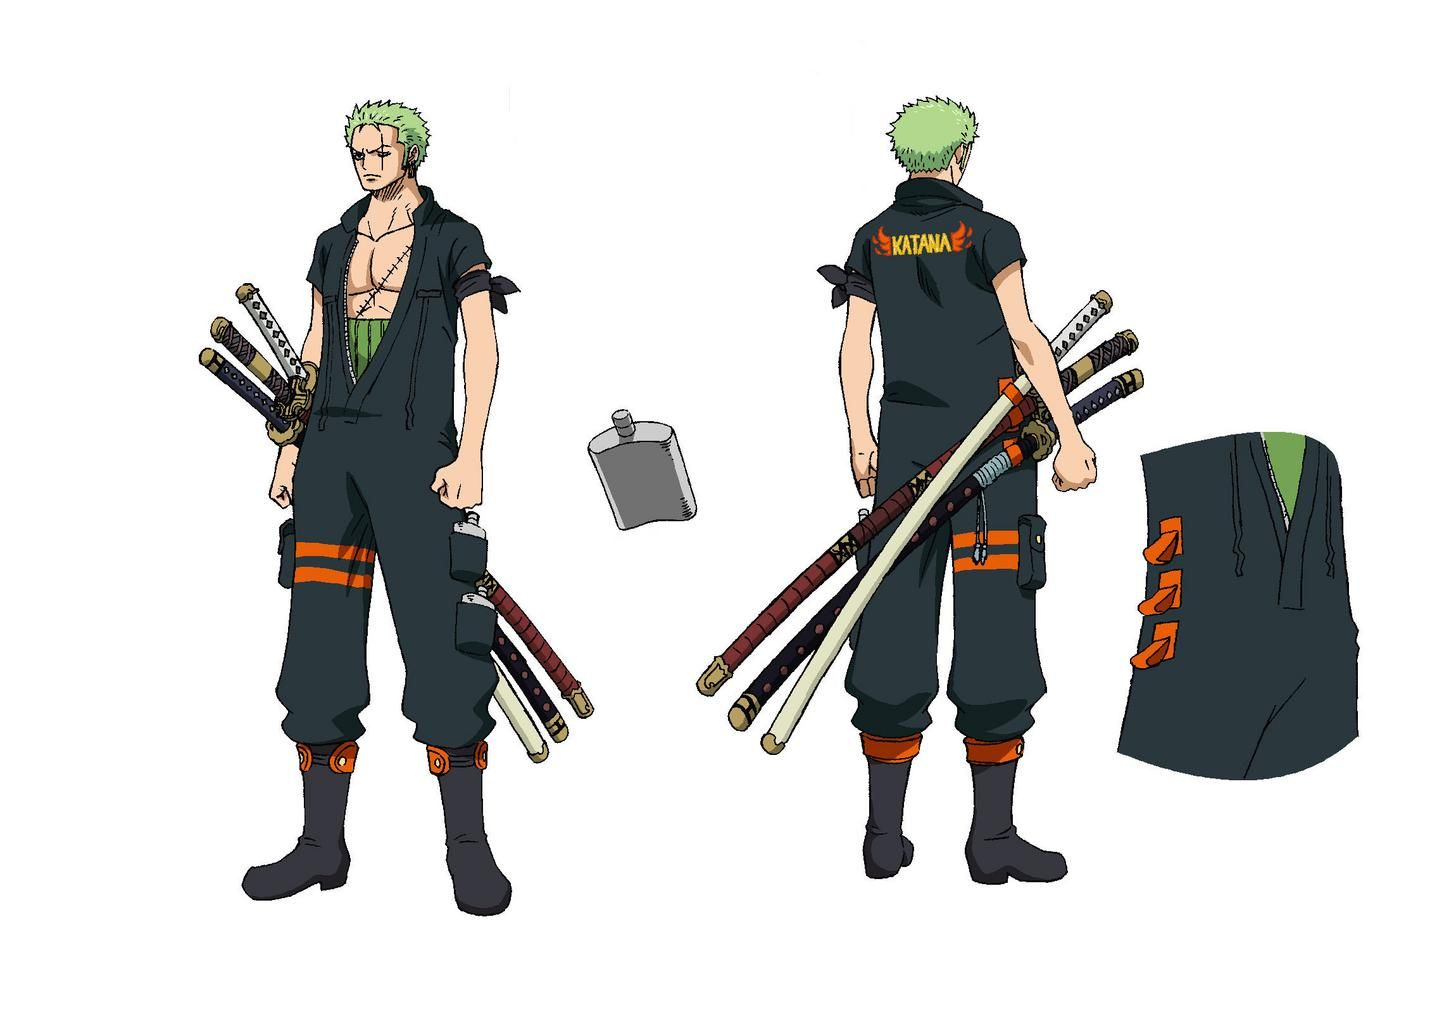 One Piece Stampede Colored Version Of Oda S Designs One Piece Movies One Piece Manga One Piece Anime